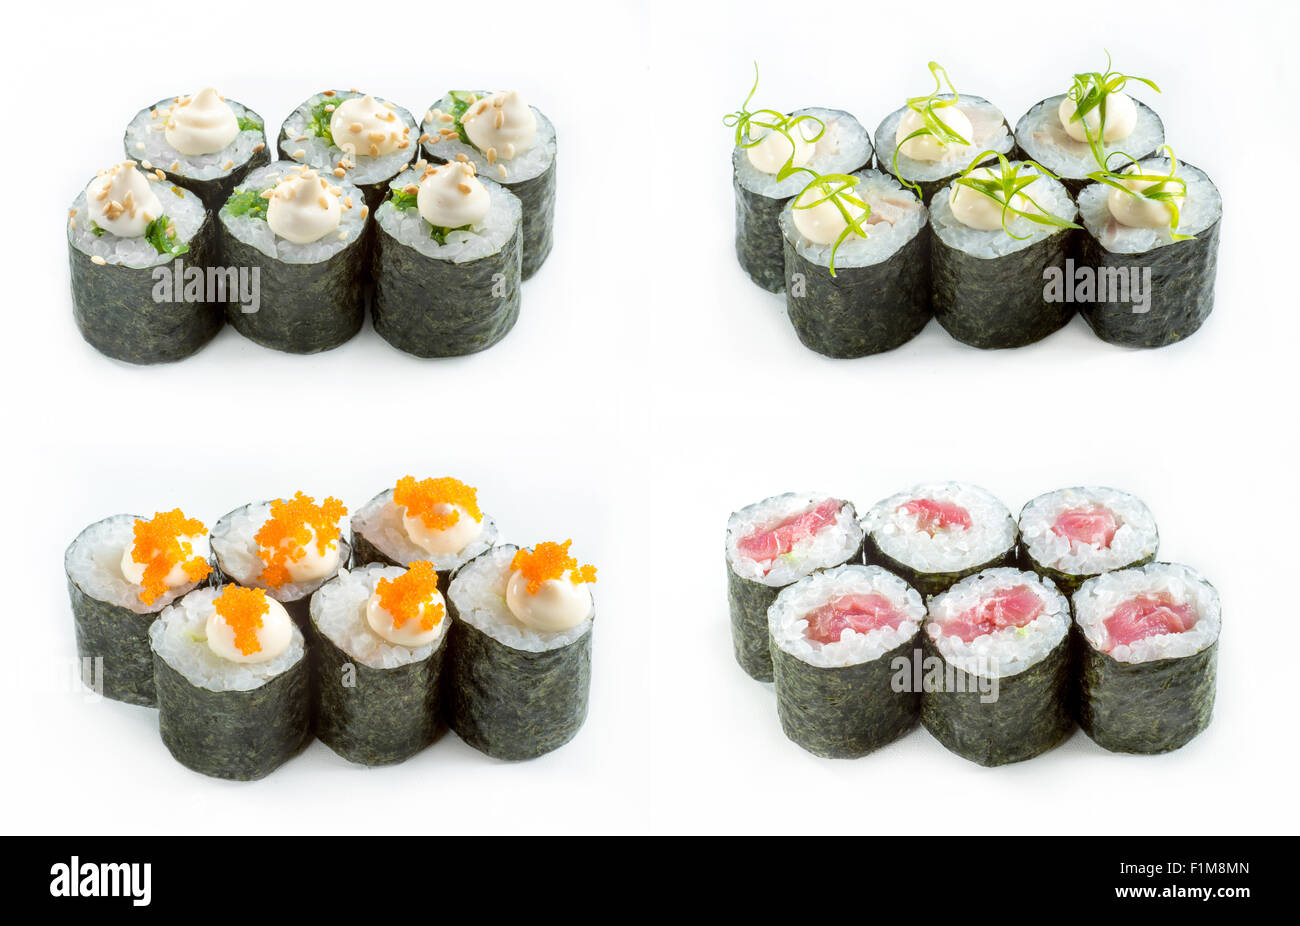 Sushi rolles - Stock Image